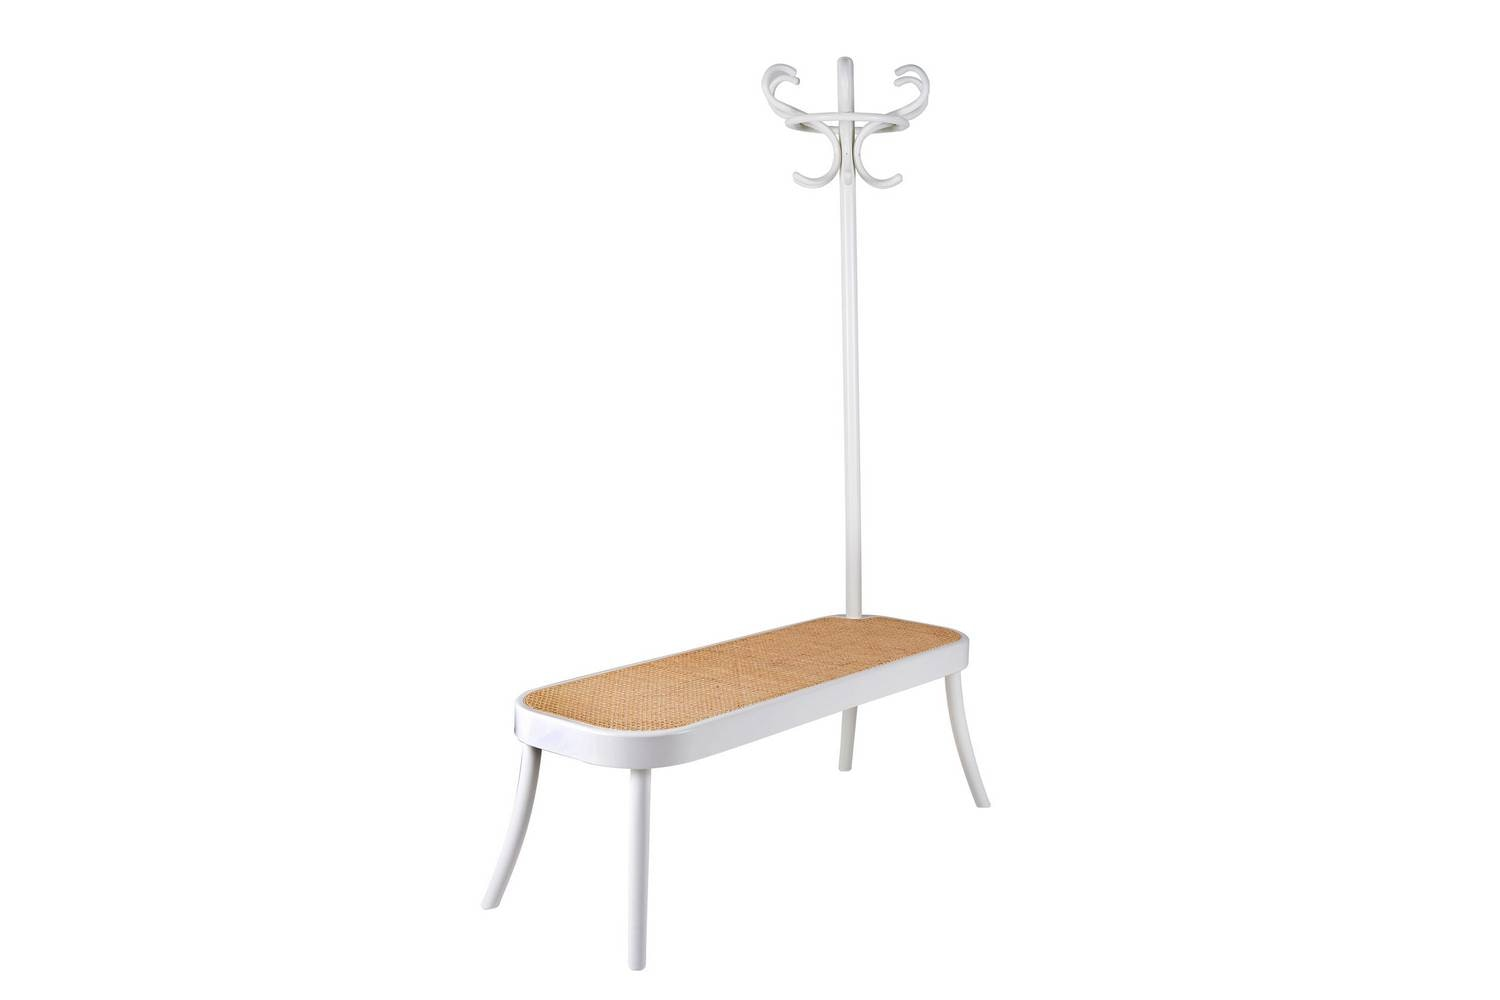 Coat Rack Bench by Front for Wiener GTV Design